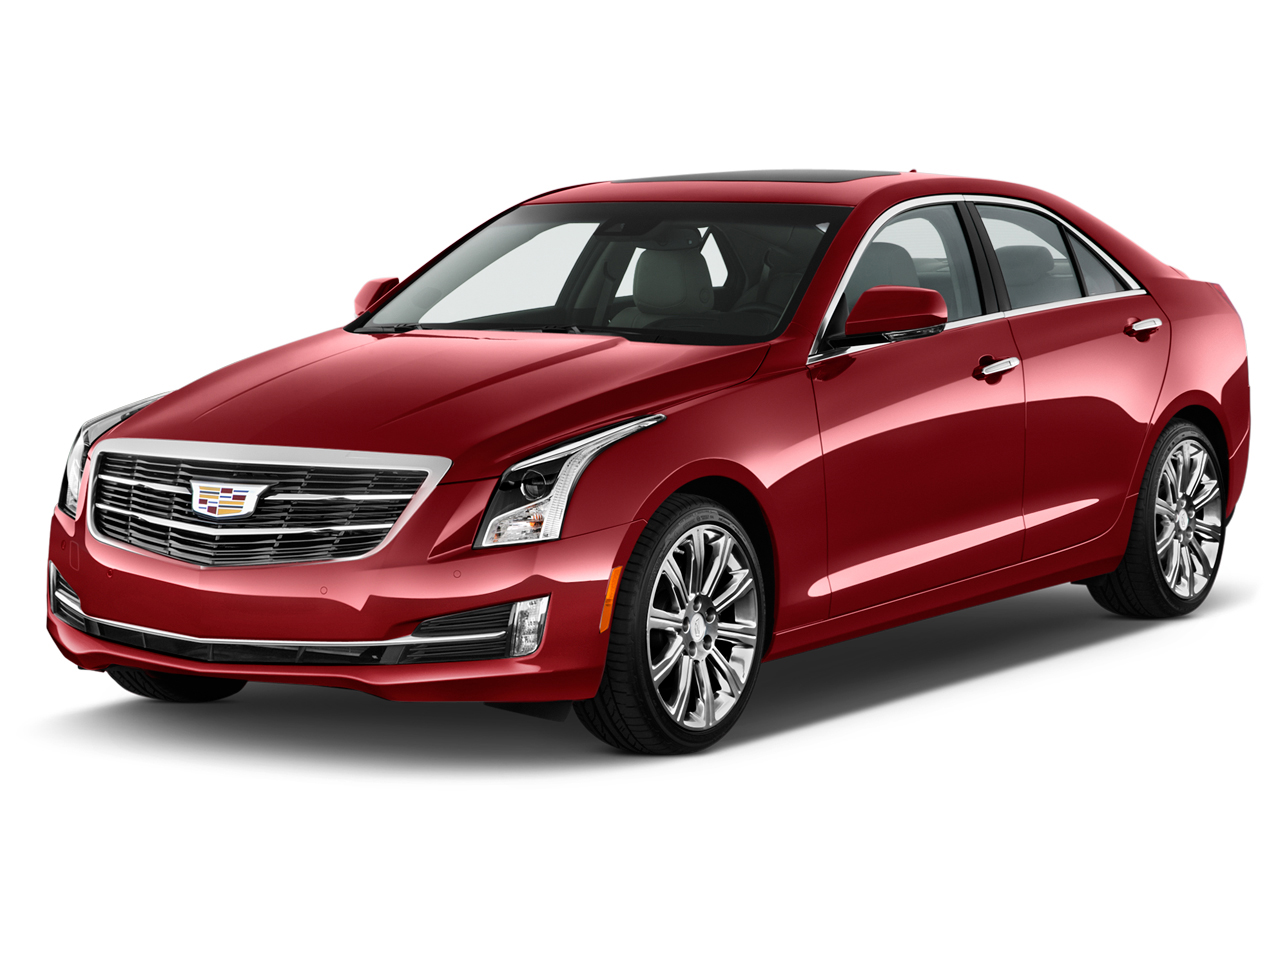 2015 Cadillac ATS Sedan Review, Ratings, Specs, Prices ...